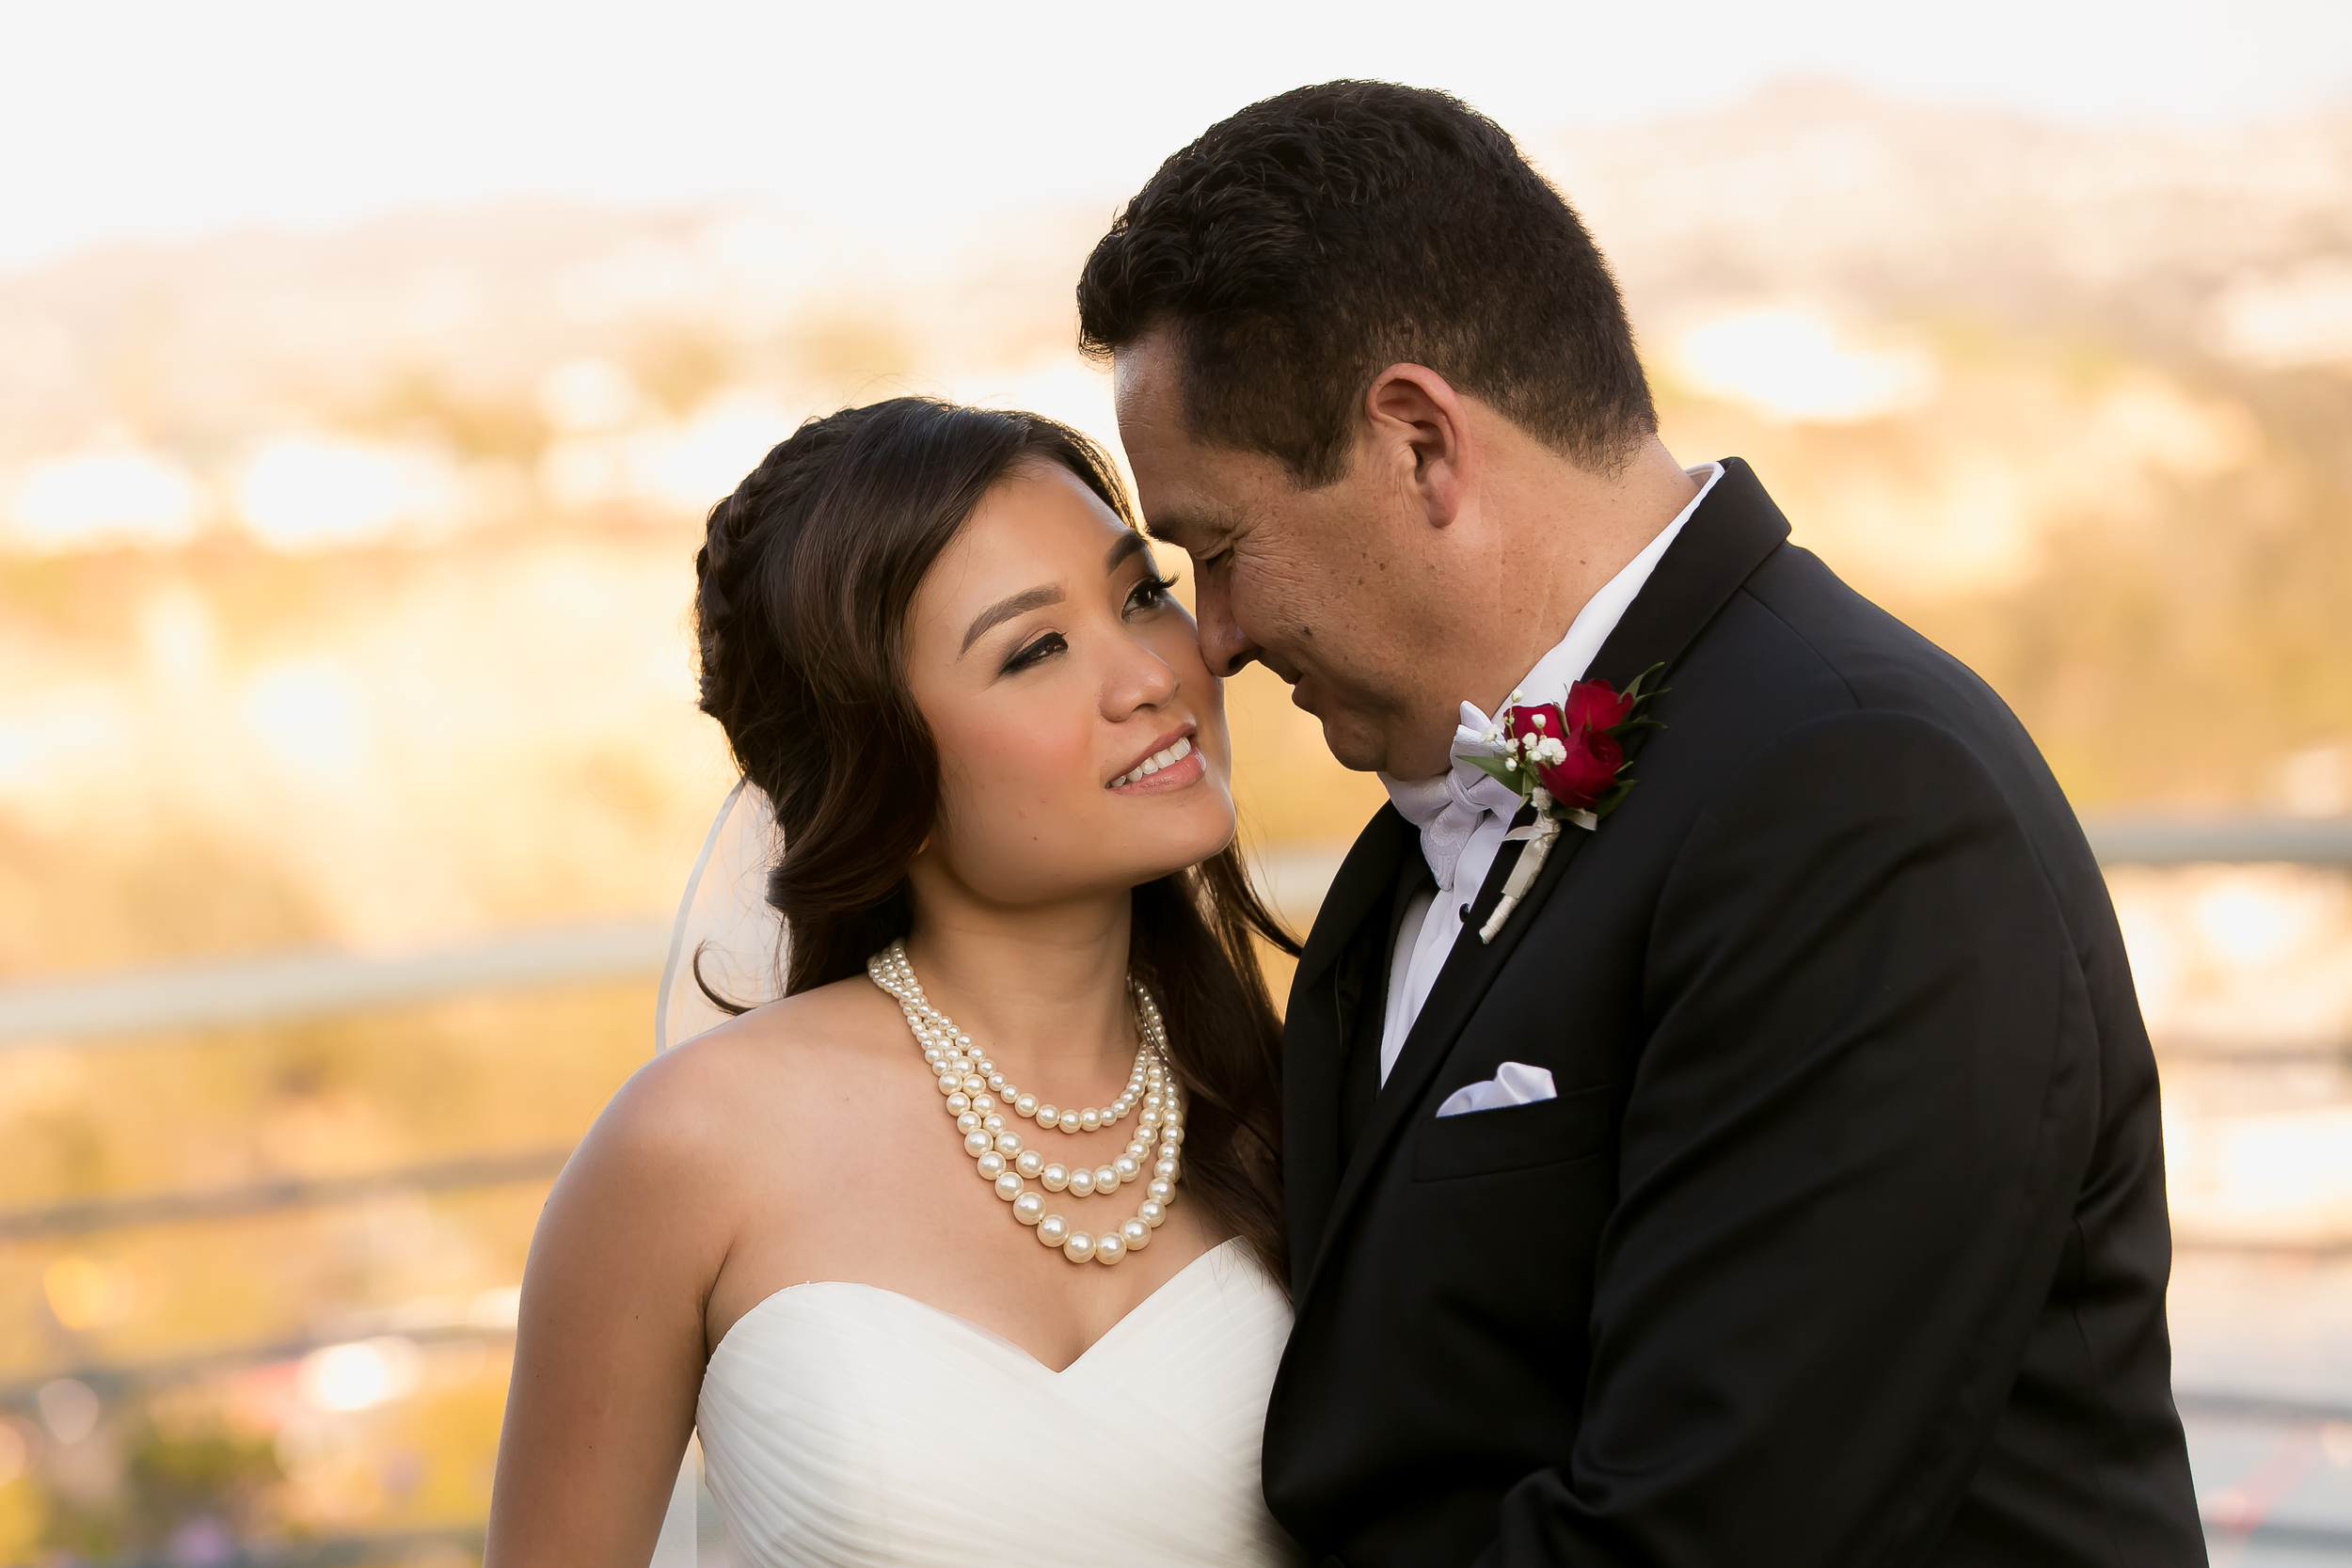 Dana-Point-Wedding [Preview]-0002.JPG